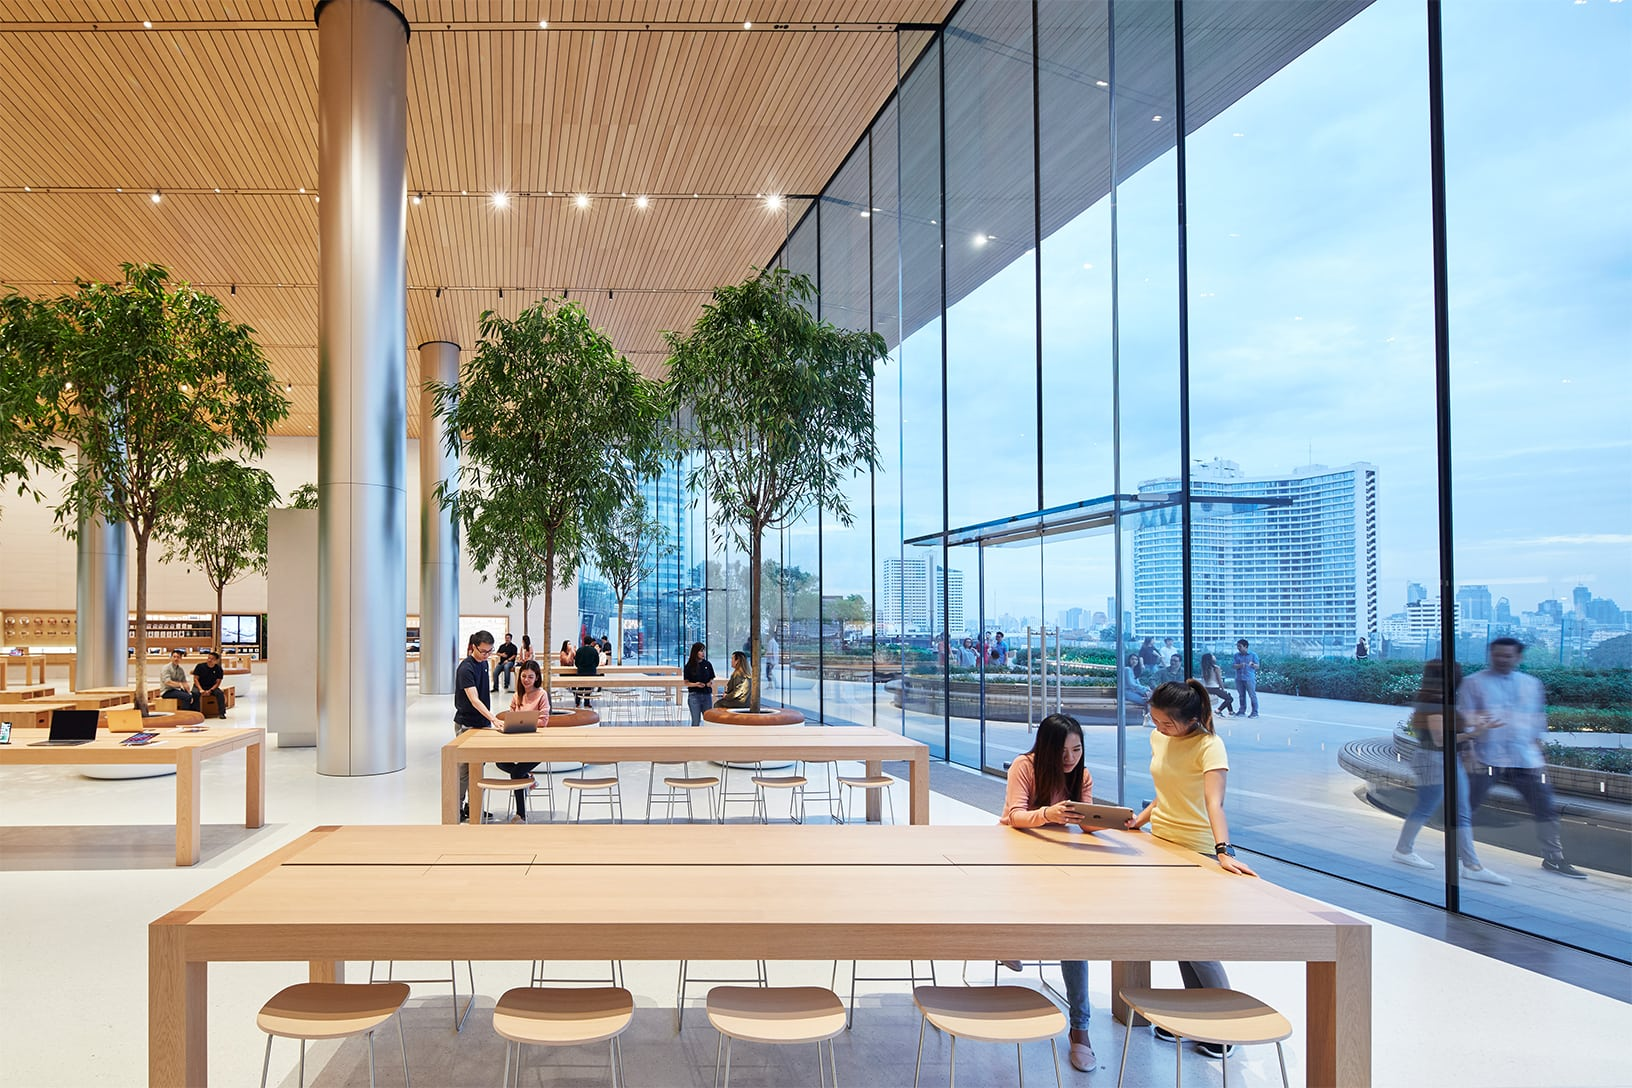 Look Inside Apple's First Store in Thailand